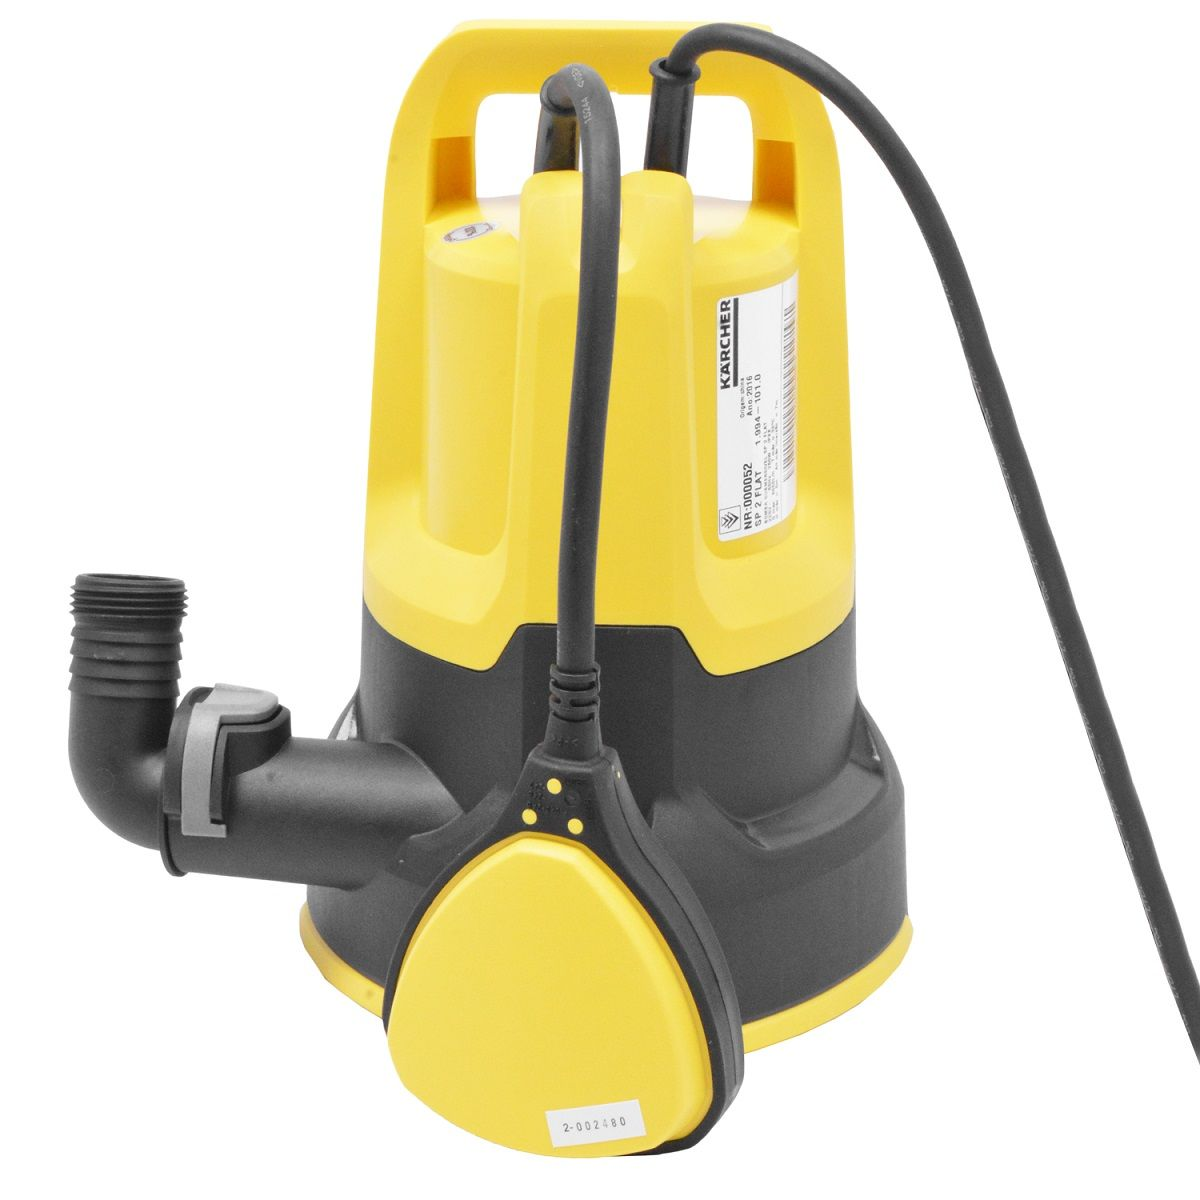 Motobomba Drenagem Submersa 250w SP2 Flat - Karcher